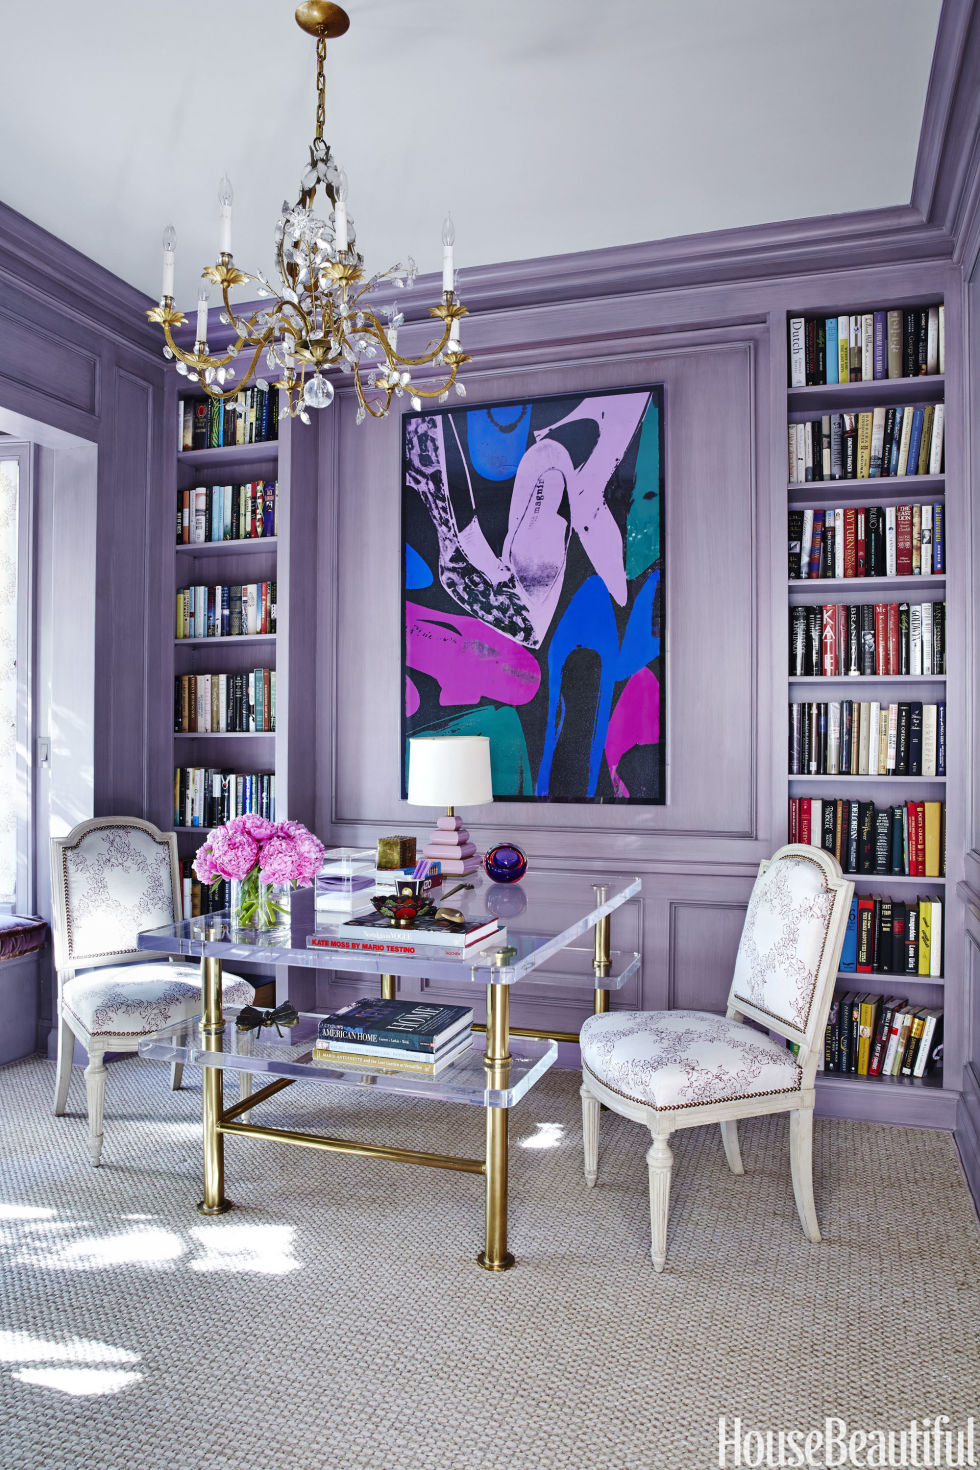 60+ Best Home Office Decorating Ideas   Design Photos Of Home Offices    House Beautiful